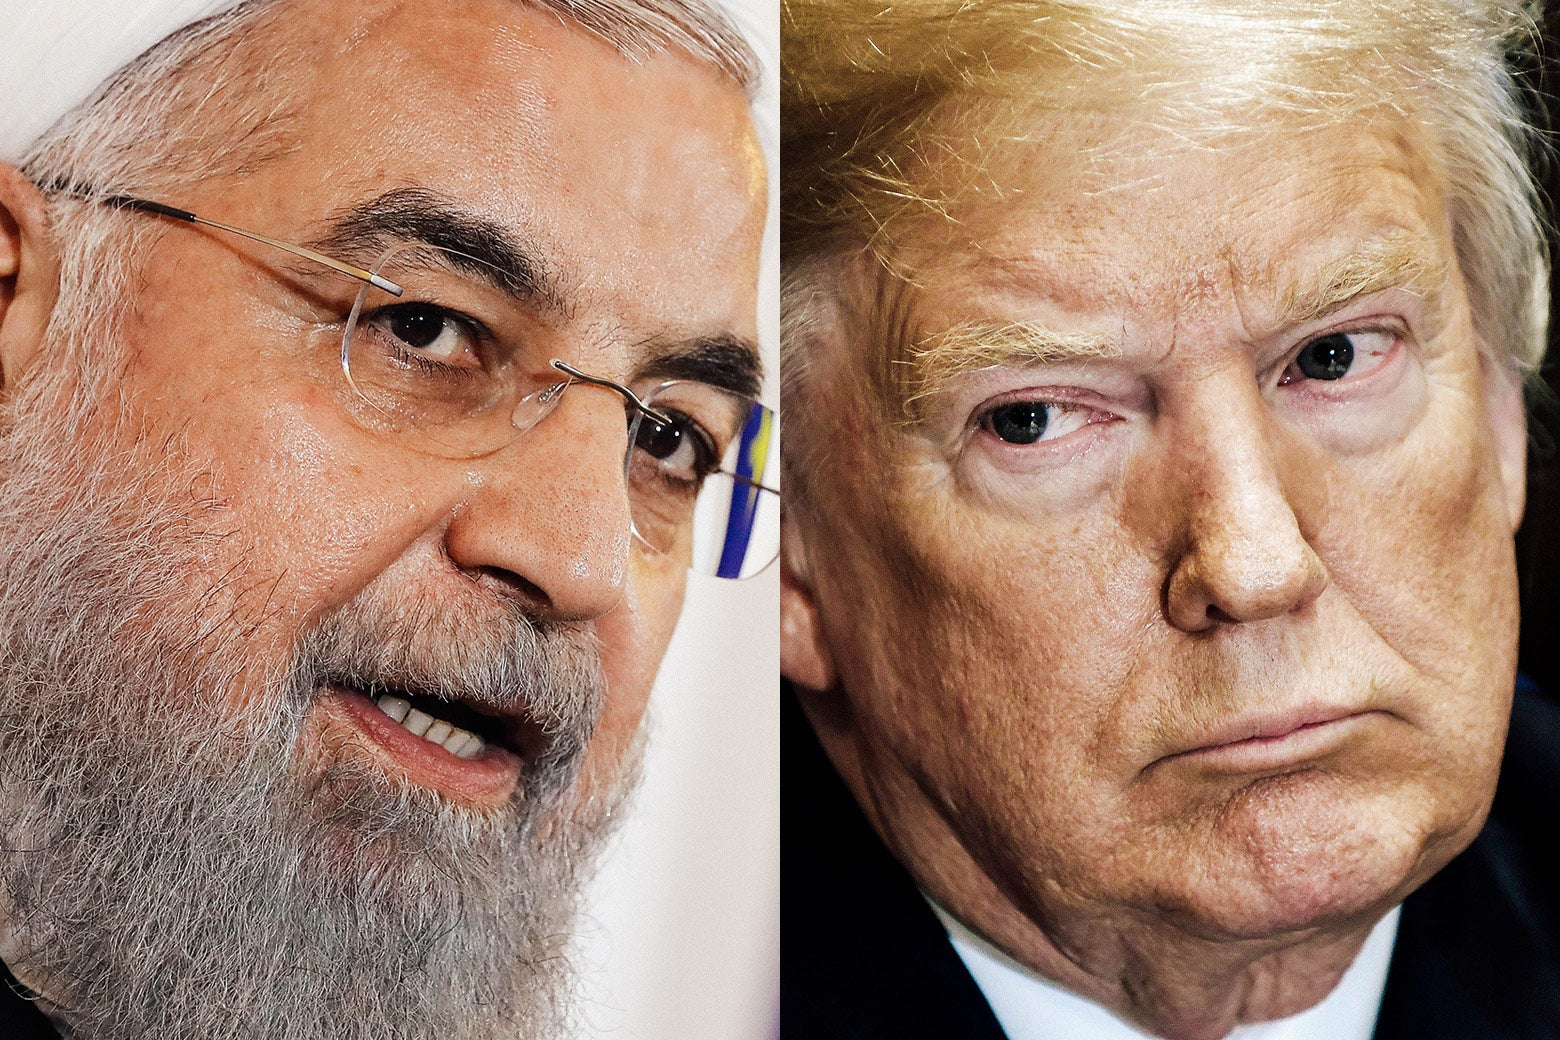 Iranian President Hassan Rouhani and U.S. President Donald Trump.